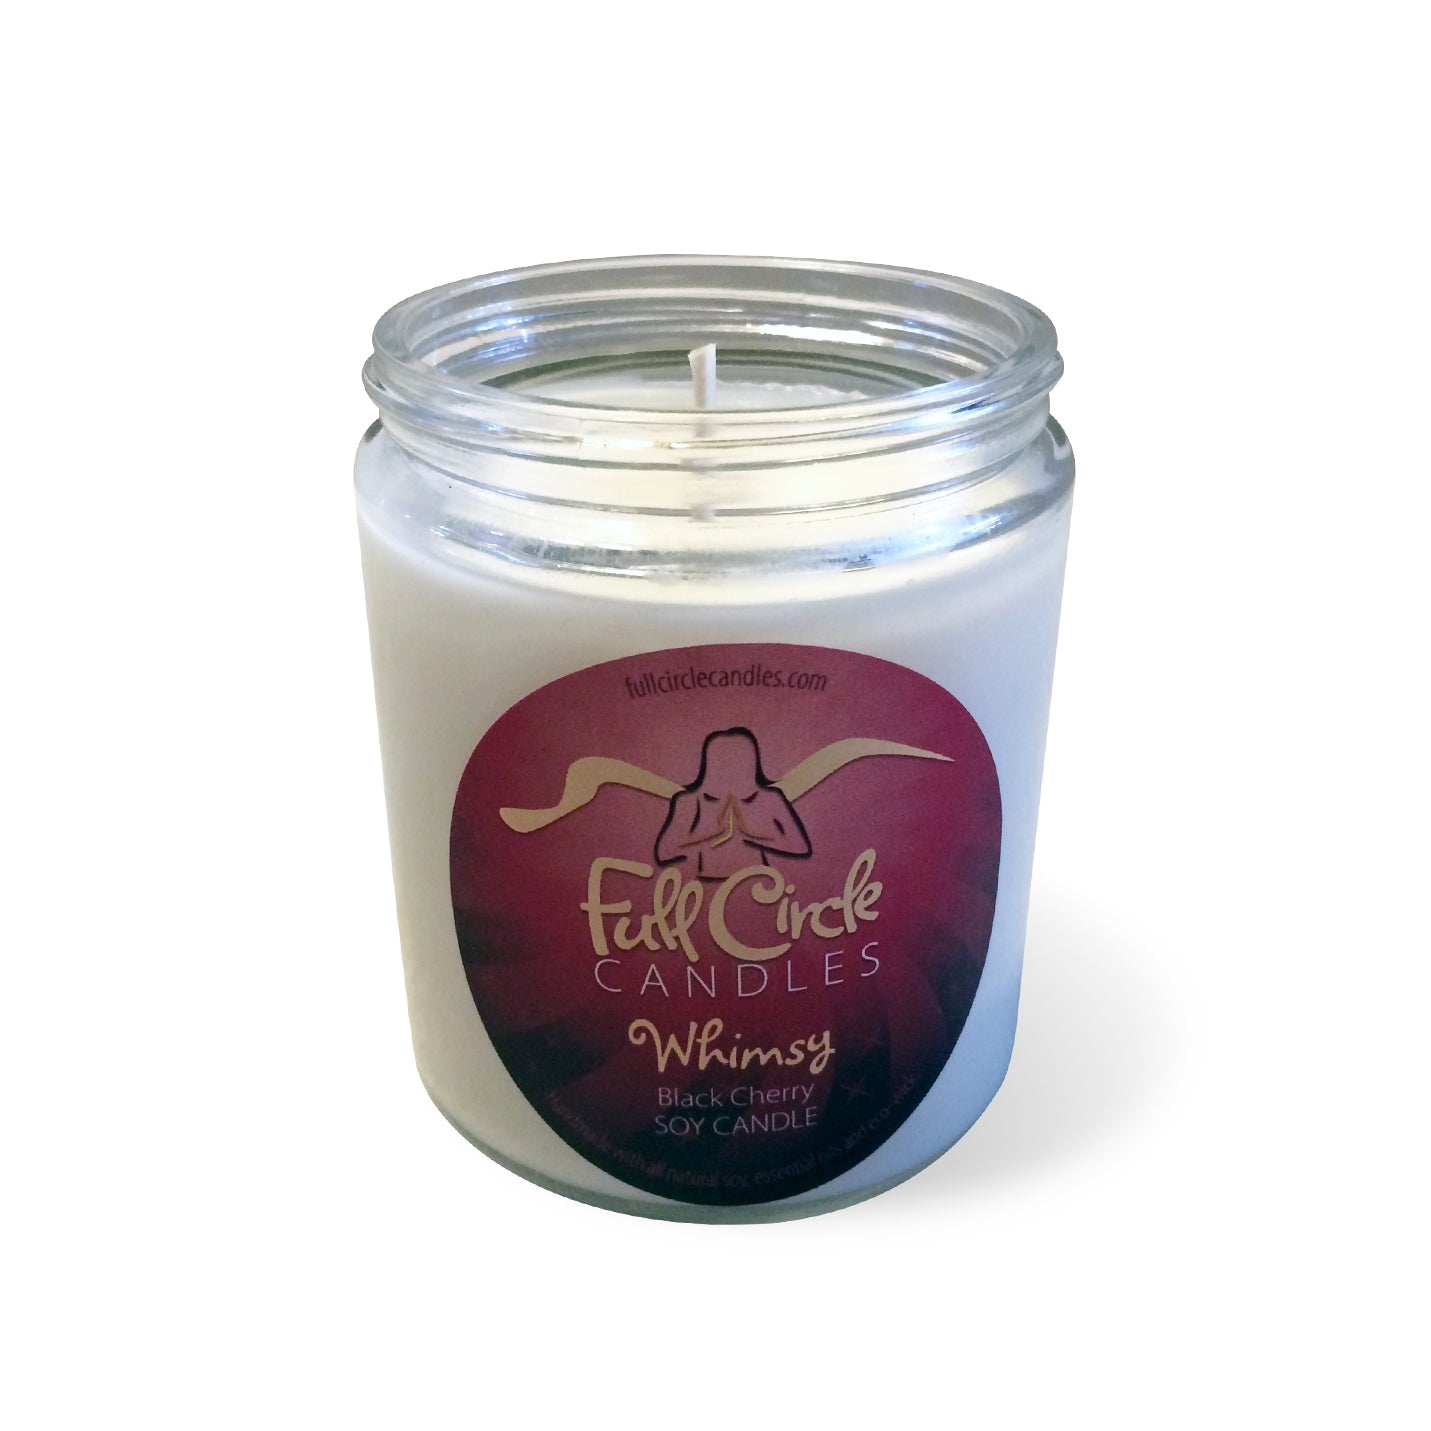 Full Circle Soy Candle Black Cherry